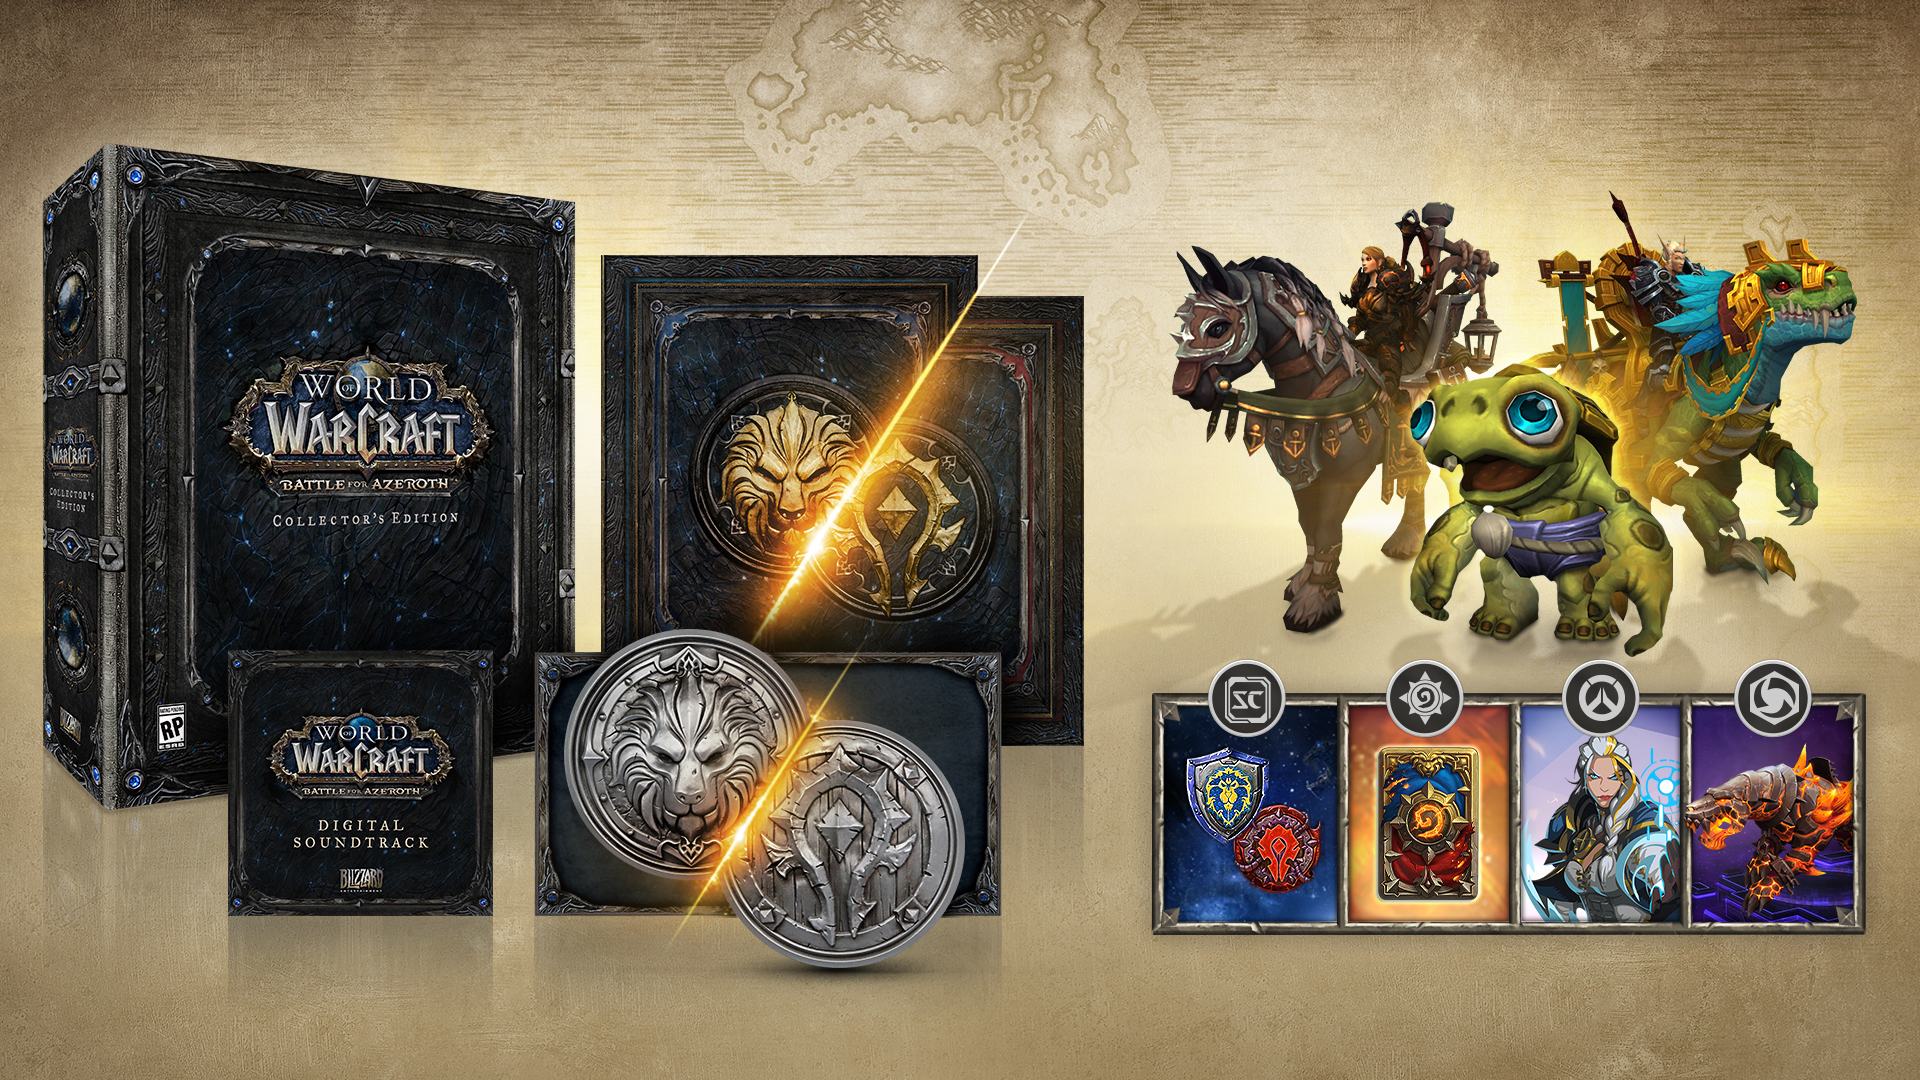 World of Warcraft's 7th Expansion Launches August 14